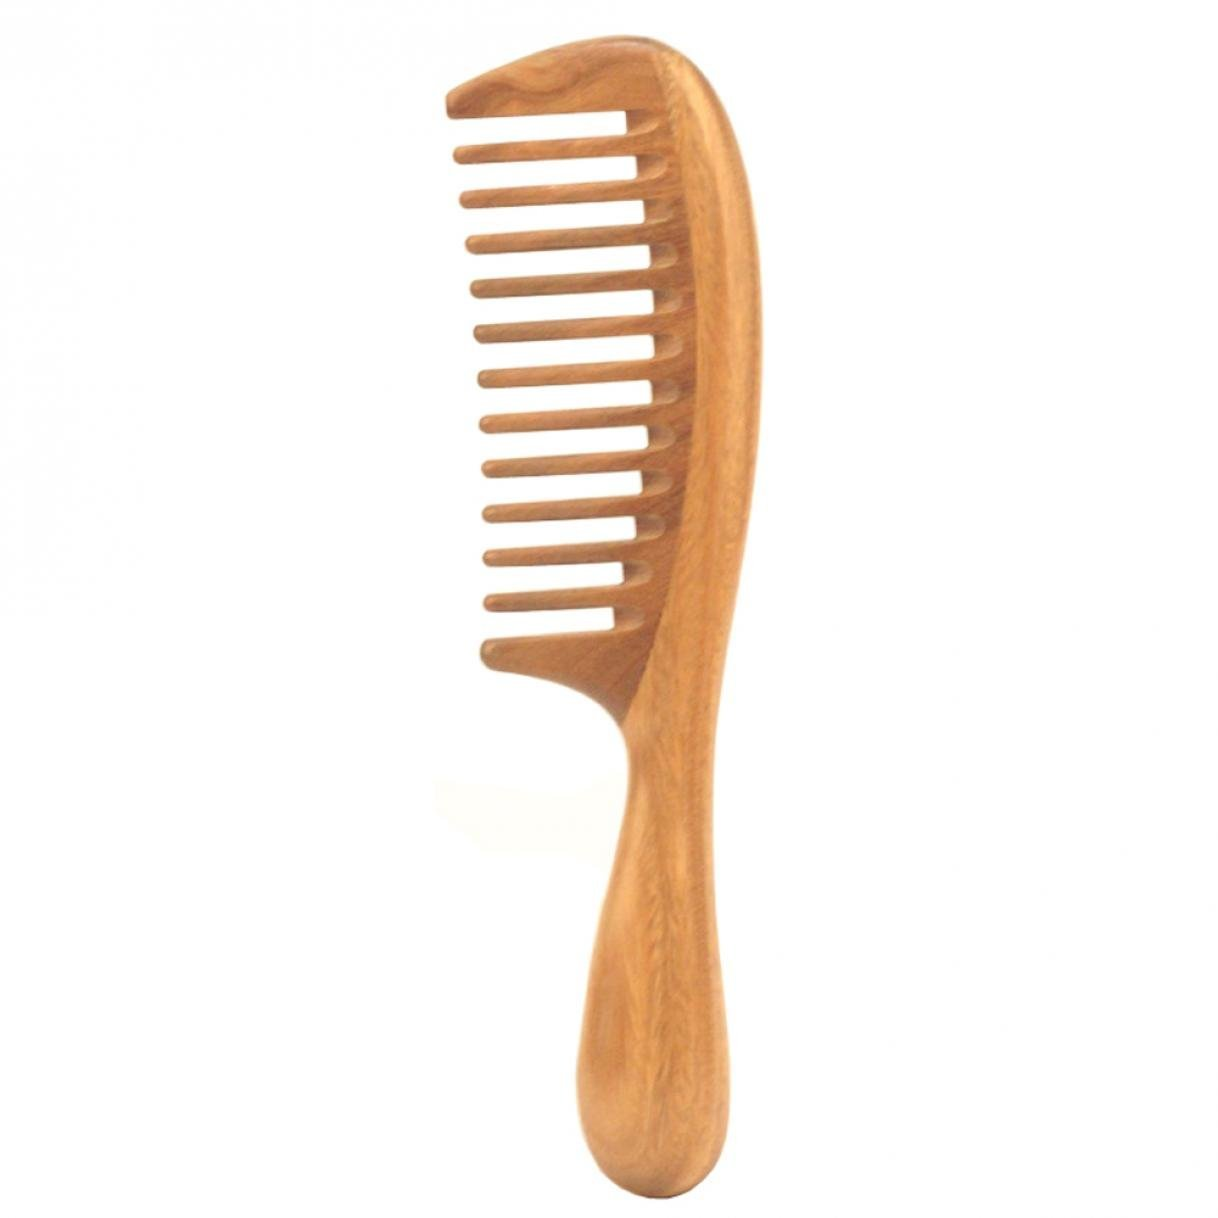 LOUISE MAELYS Natural Sandalwood Wooden Comb Wide Tooth Detangling Hair Comb for Thick Curly Hair